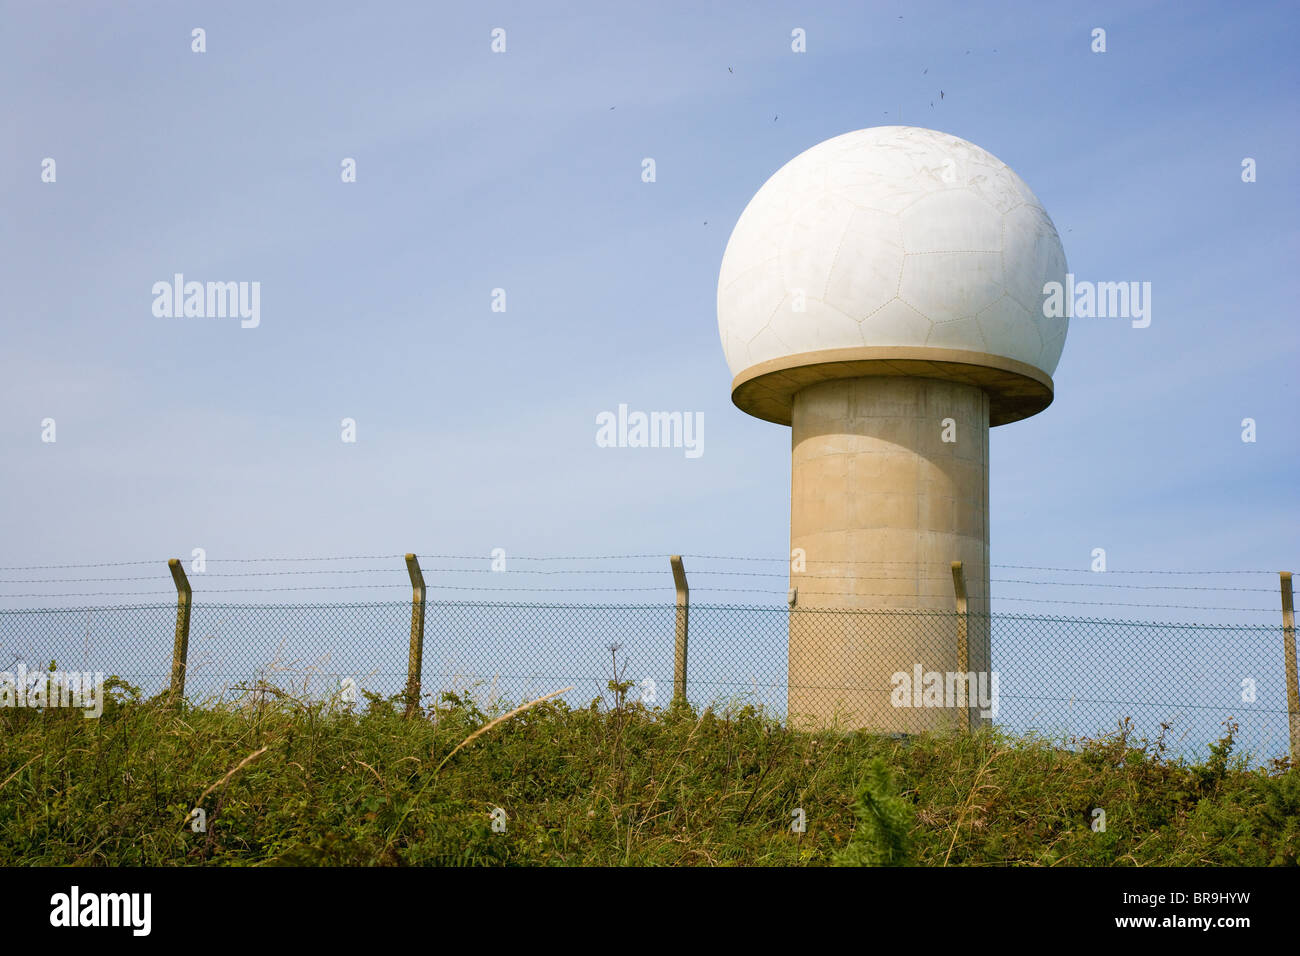 Dome and tower of radar station overlooking Barley Bay near Hartland Point on the coast of North Devon - Stock Image